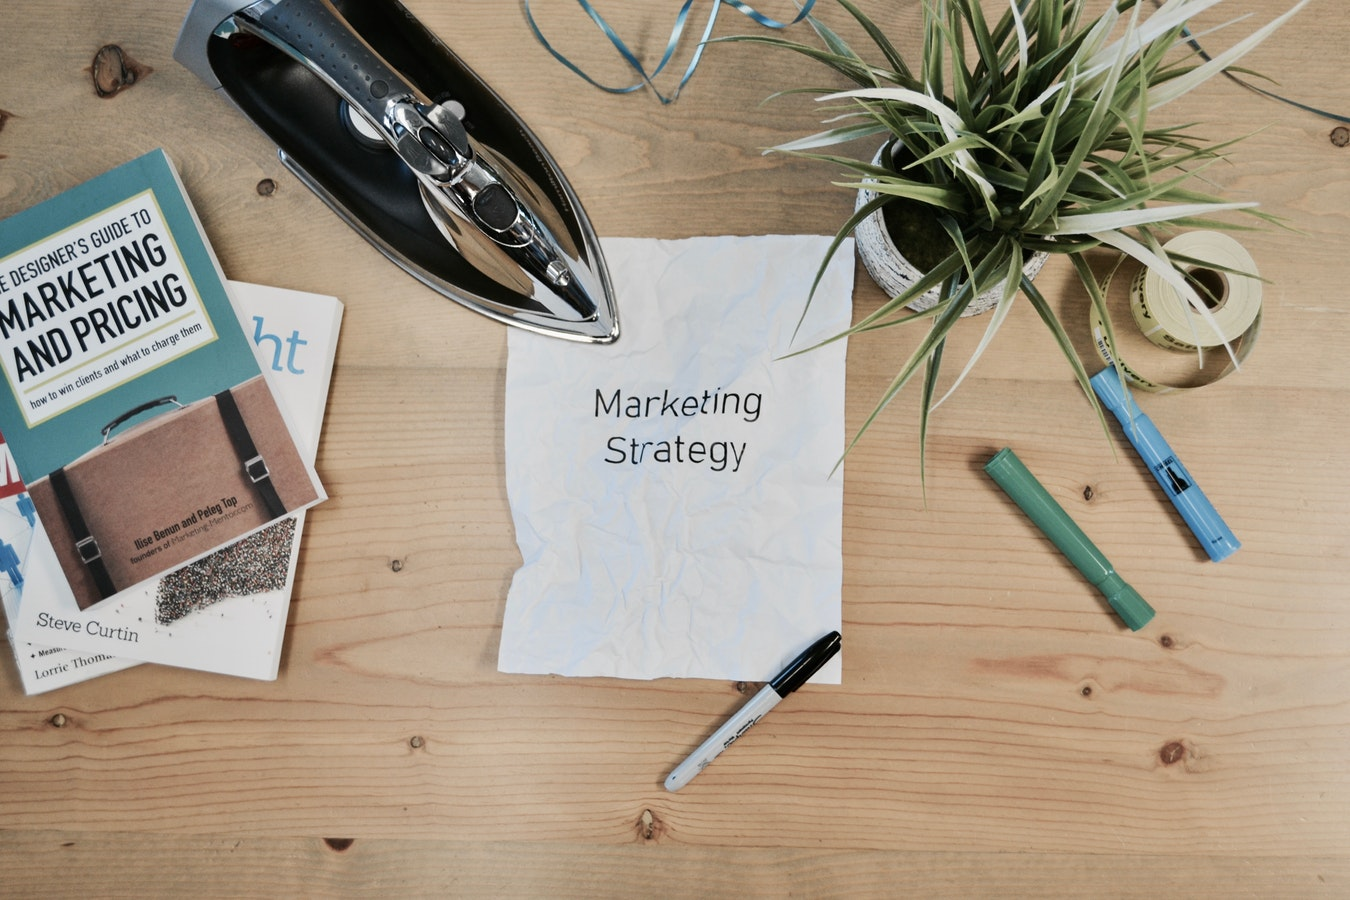 Marketing ideas need to be refreshed in 2019